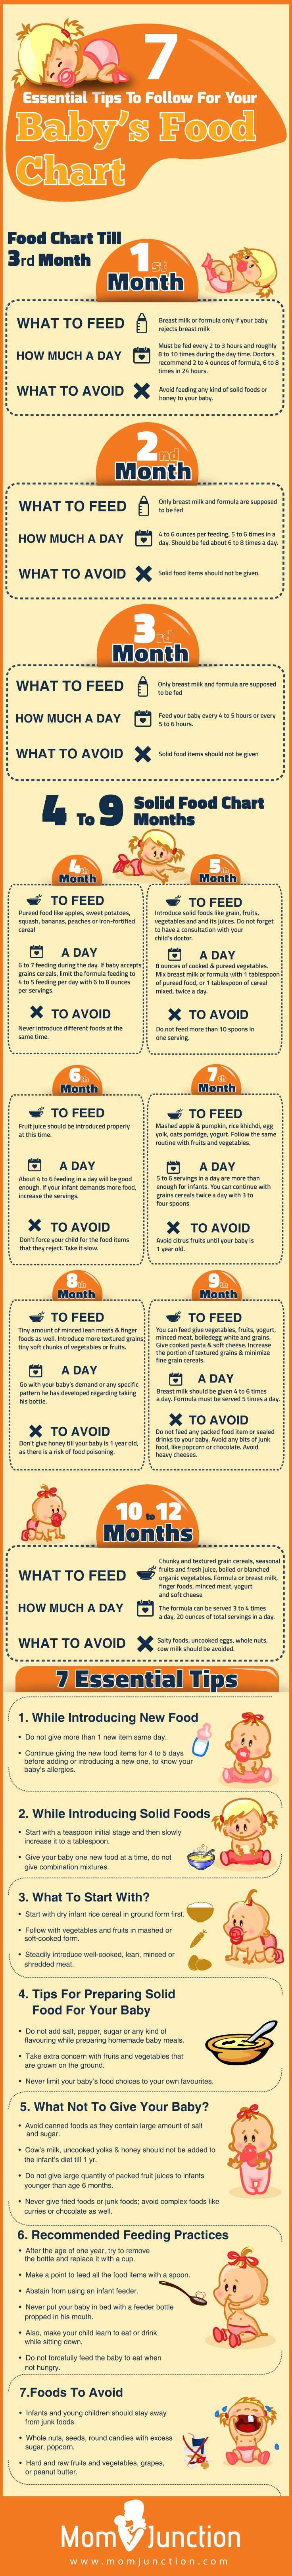 As a mom, you need to know what food to provide at each stage. If you aren't aware of complete baby feed, check out this baby food chart to get a quick idea